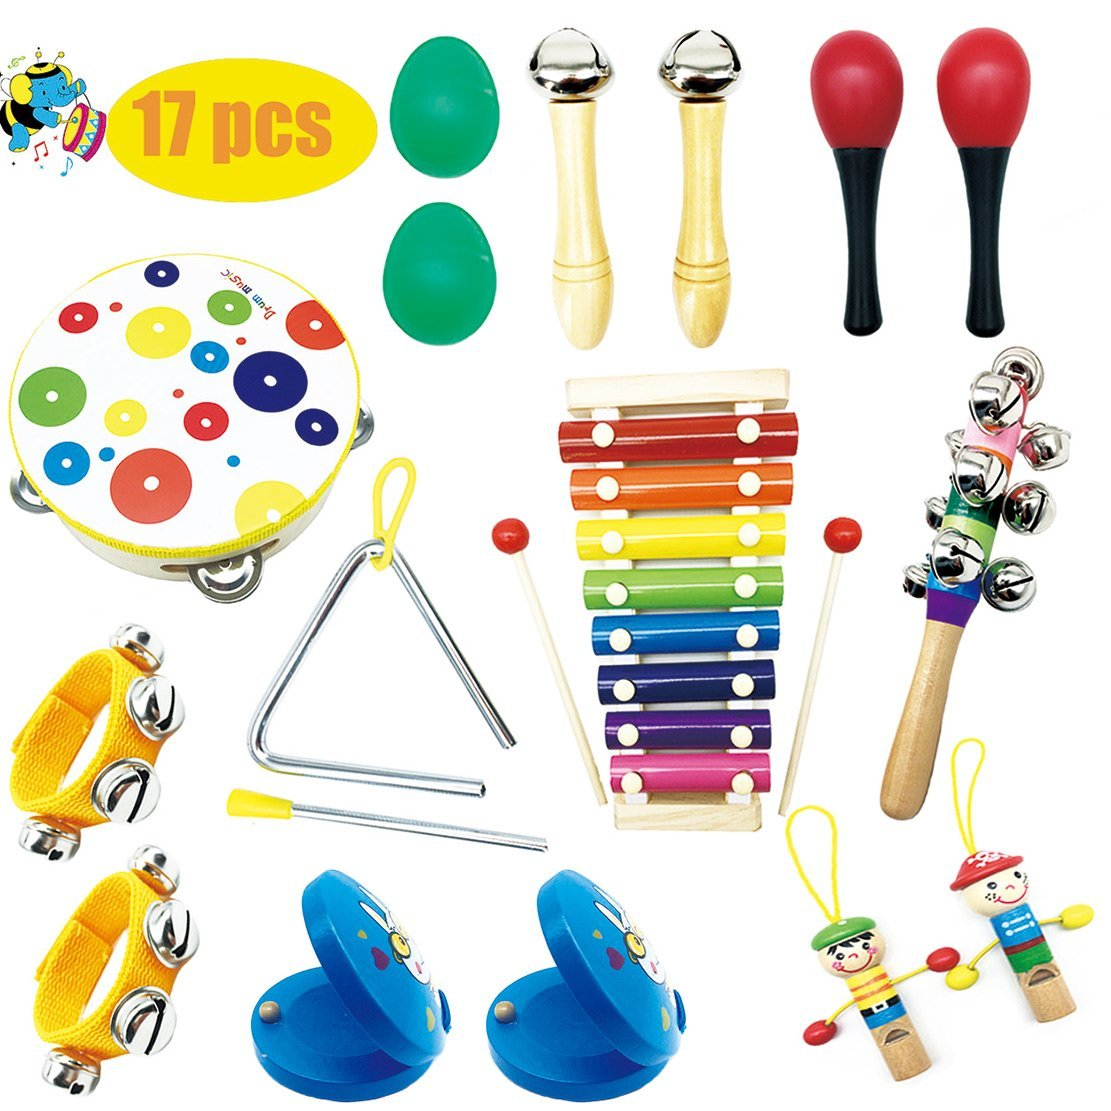 Musical Percussion Instrument Set 17 PCS Baby Music Band Education Percussion Toys for Toddlers Kids Preschool Children with Kids Zipper Handbag Formwin SELLER